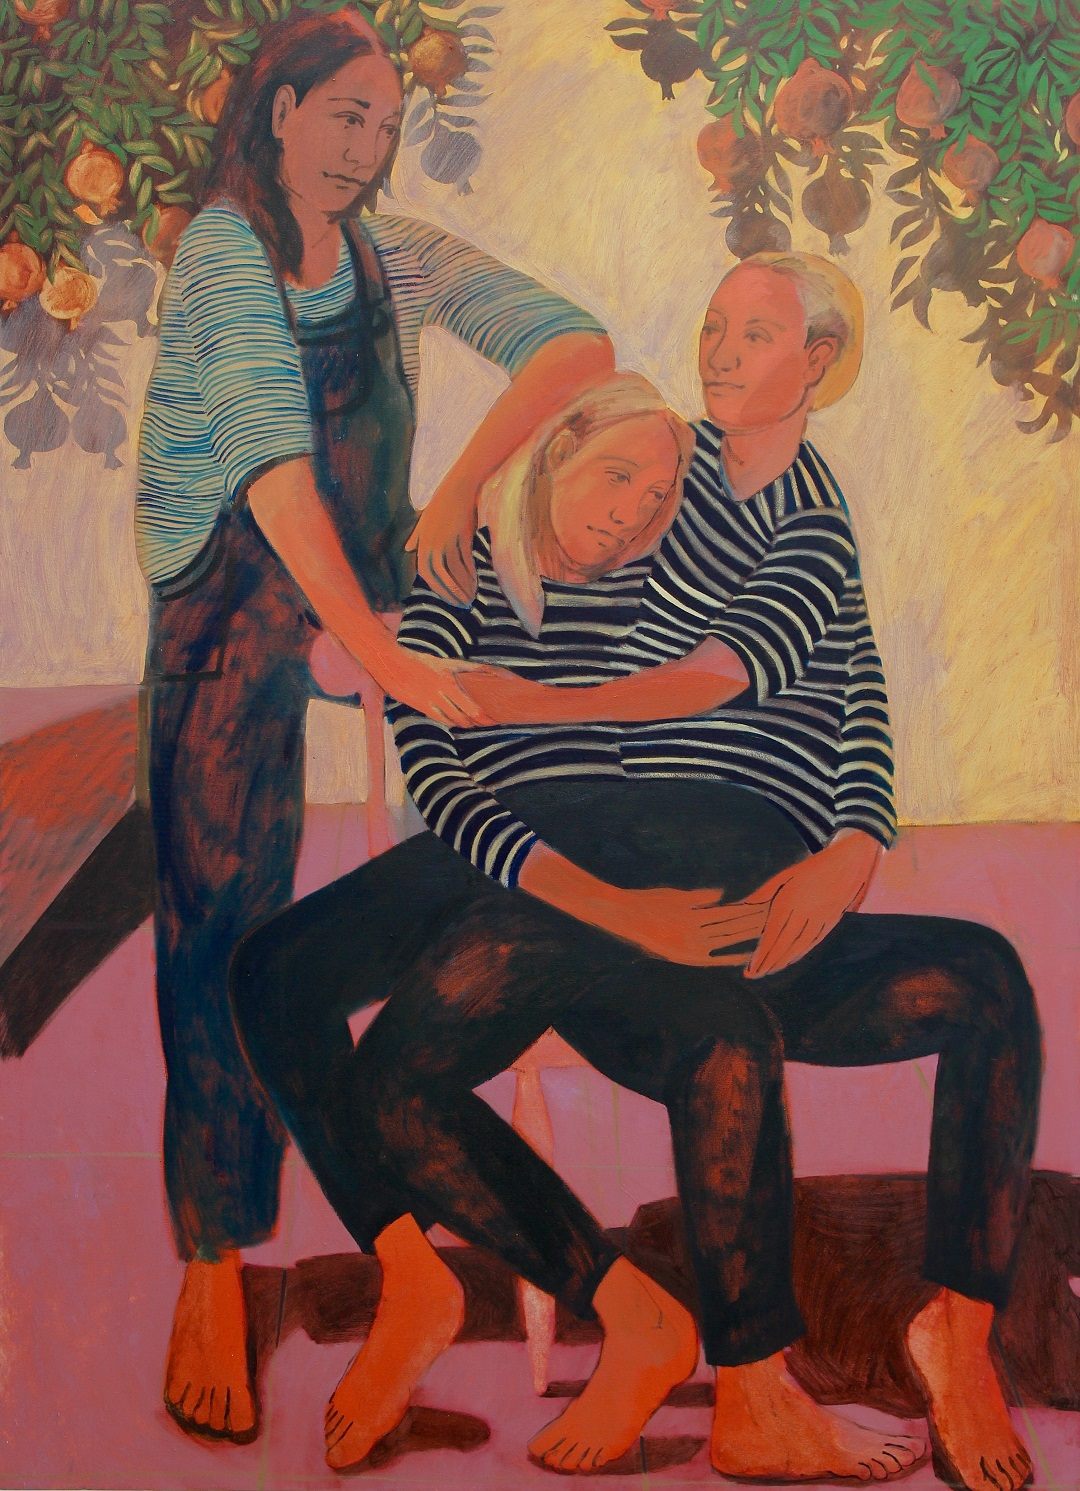 1 2 3 Sit On My Knee Nettle Grellier Oil on Canvas, 166cm x 120cm, 2019